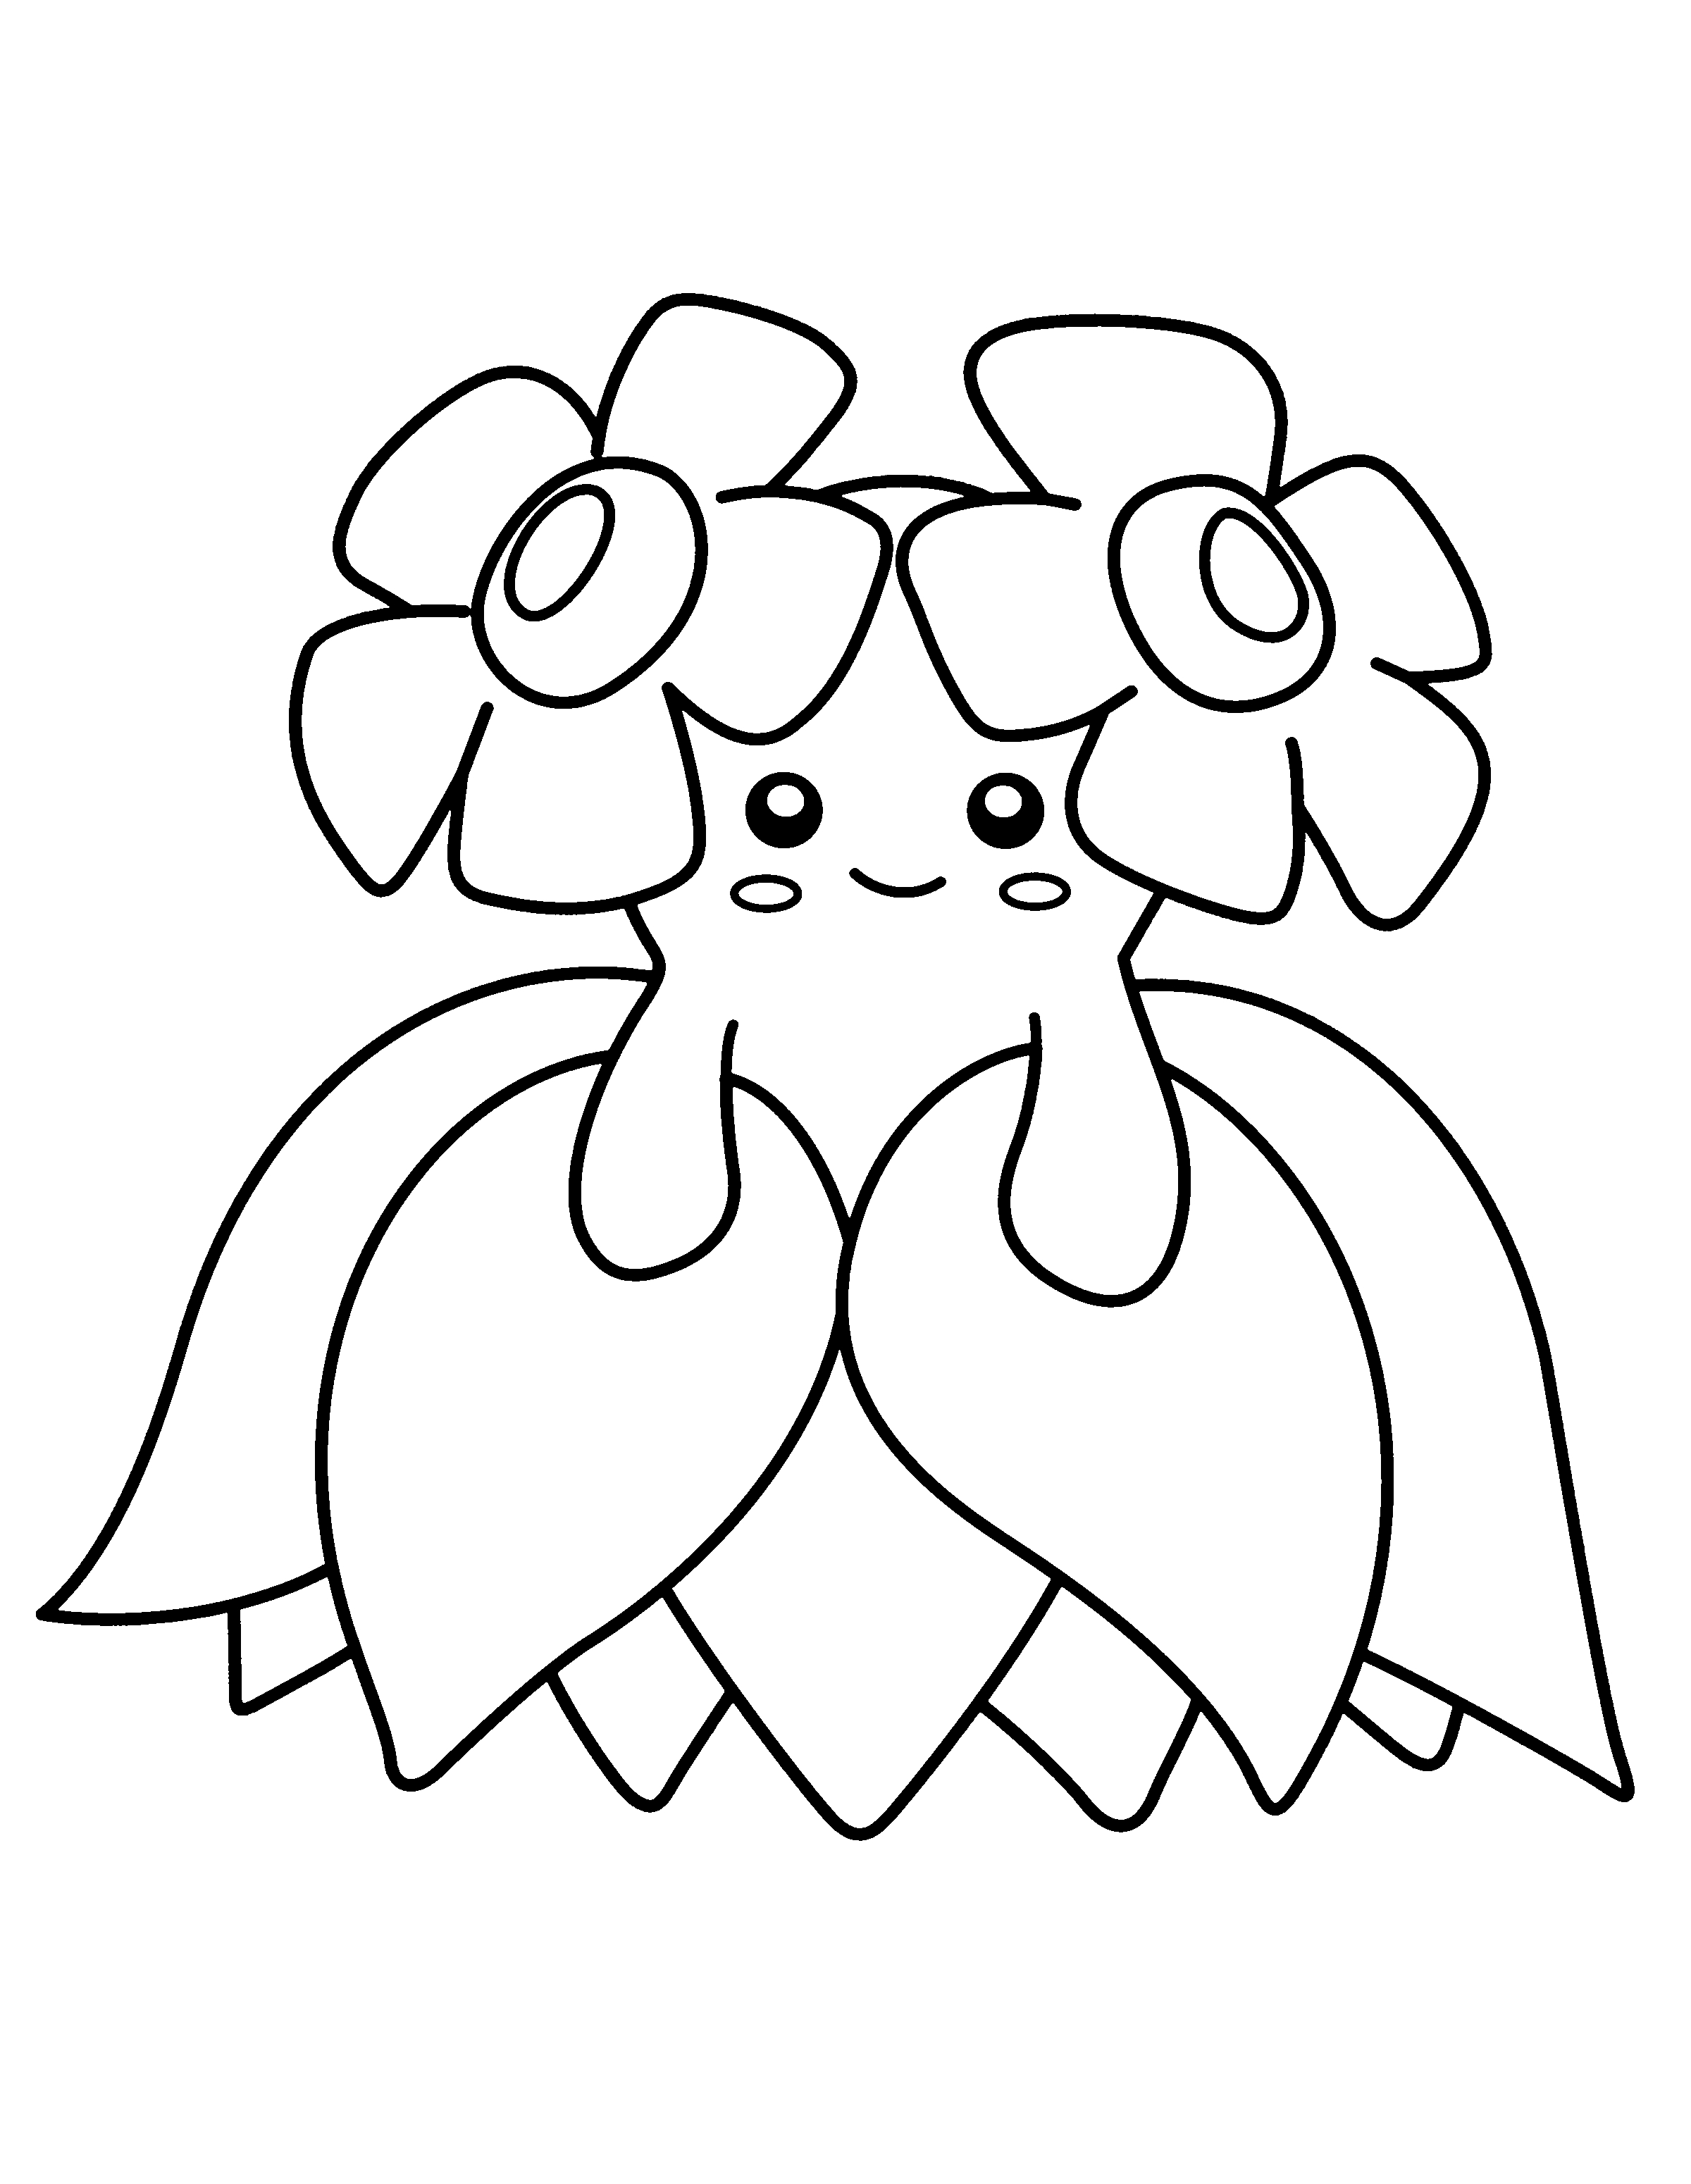 25 Zelda Coloring Pages Compilation Free Coloring Pages Part 2